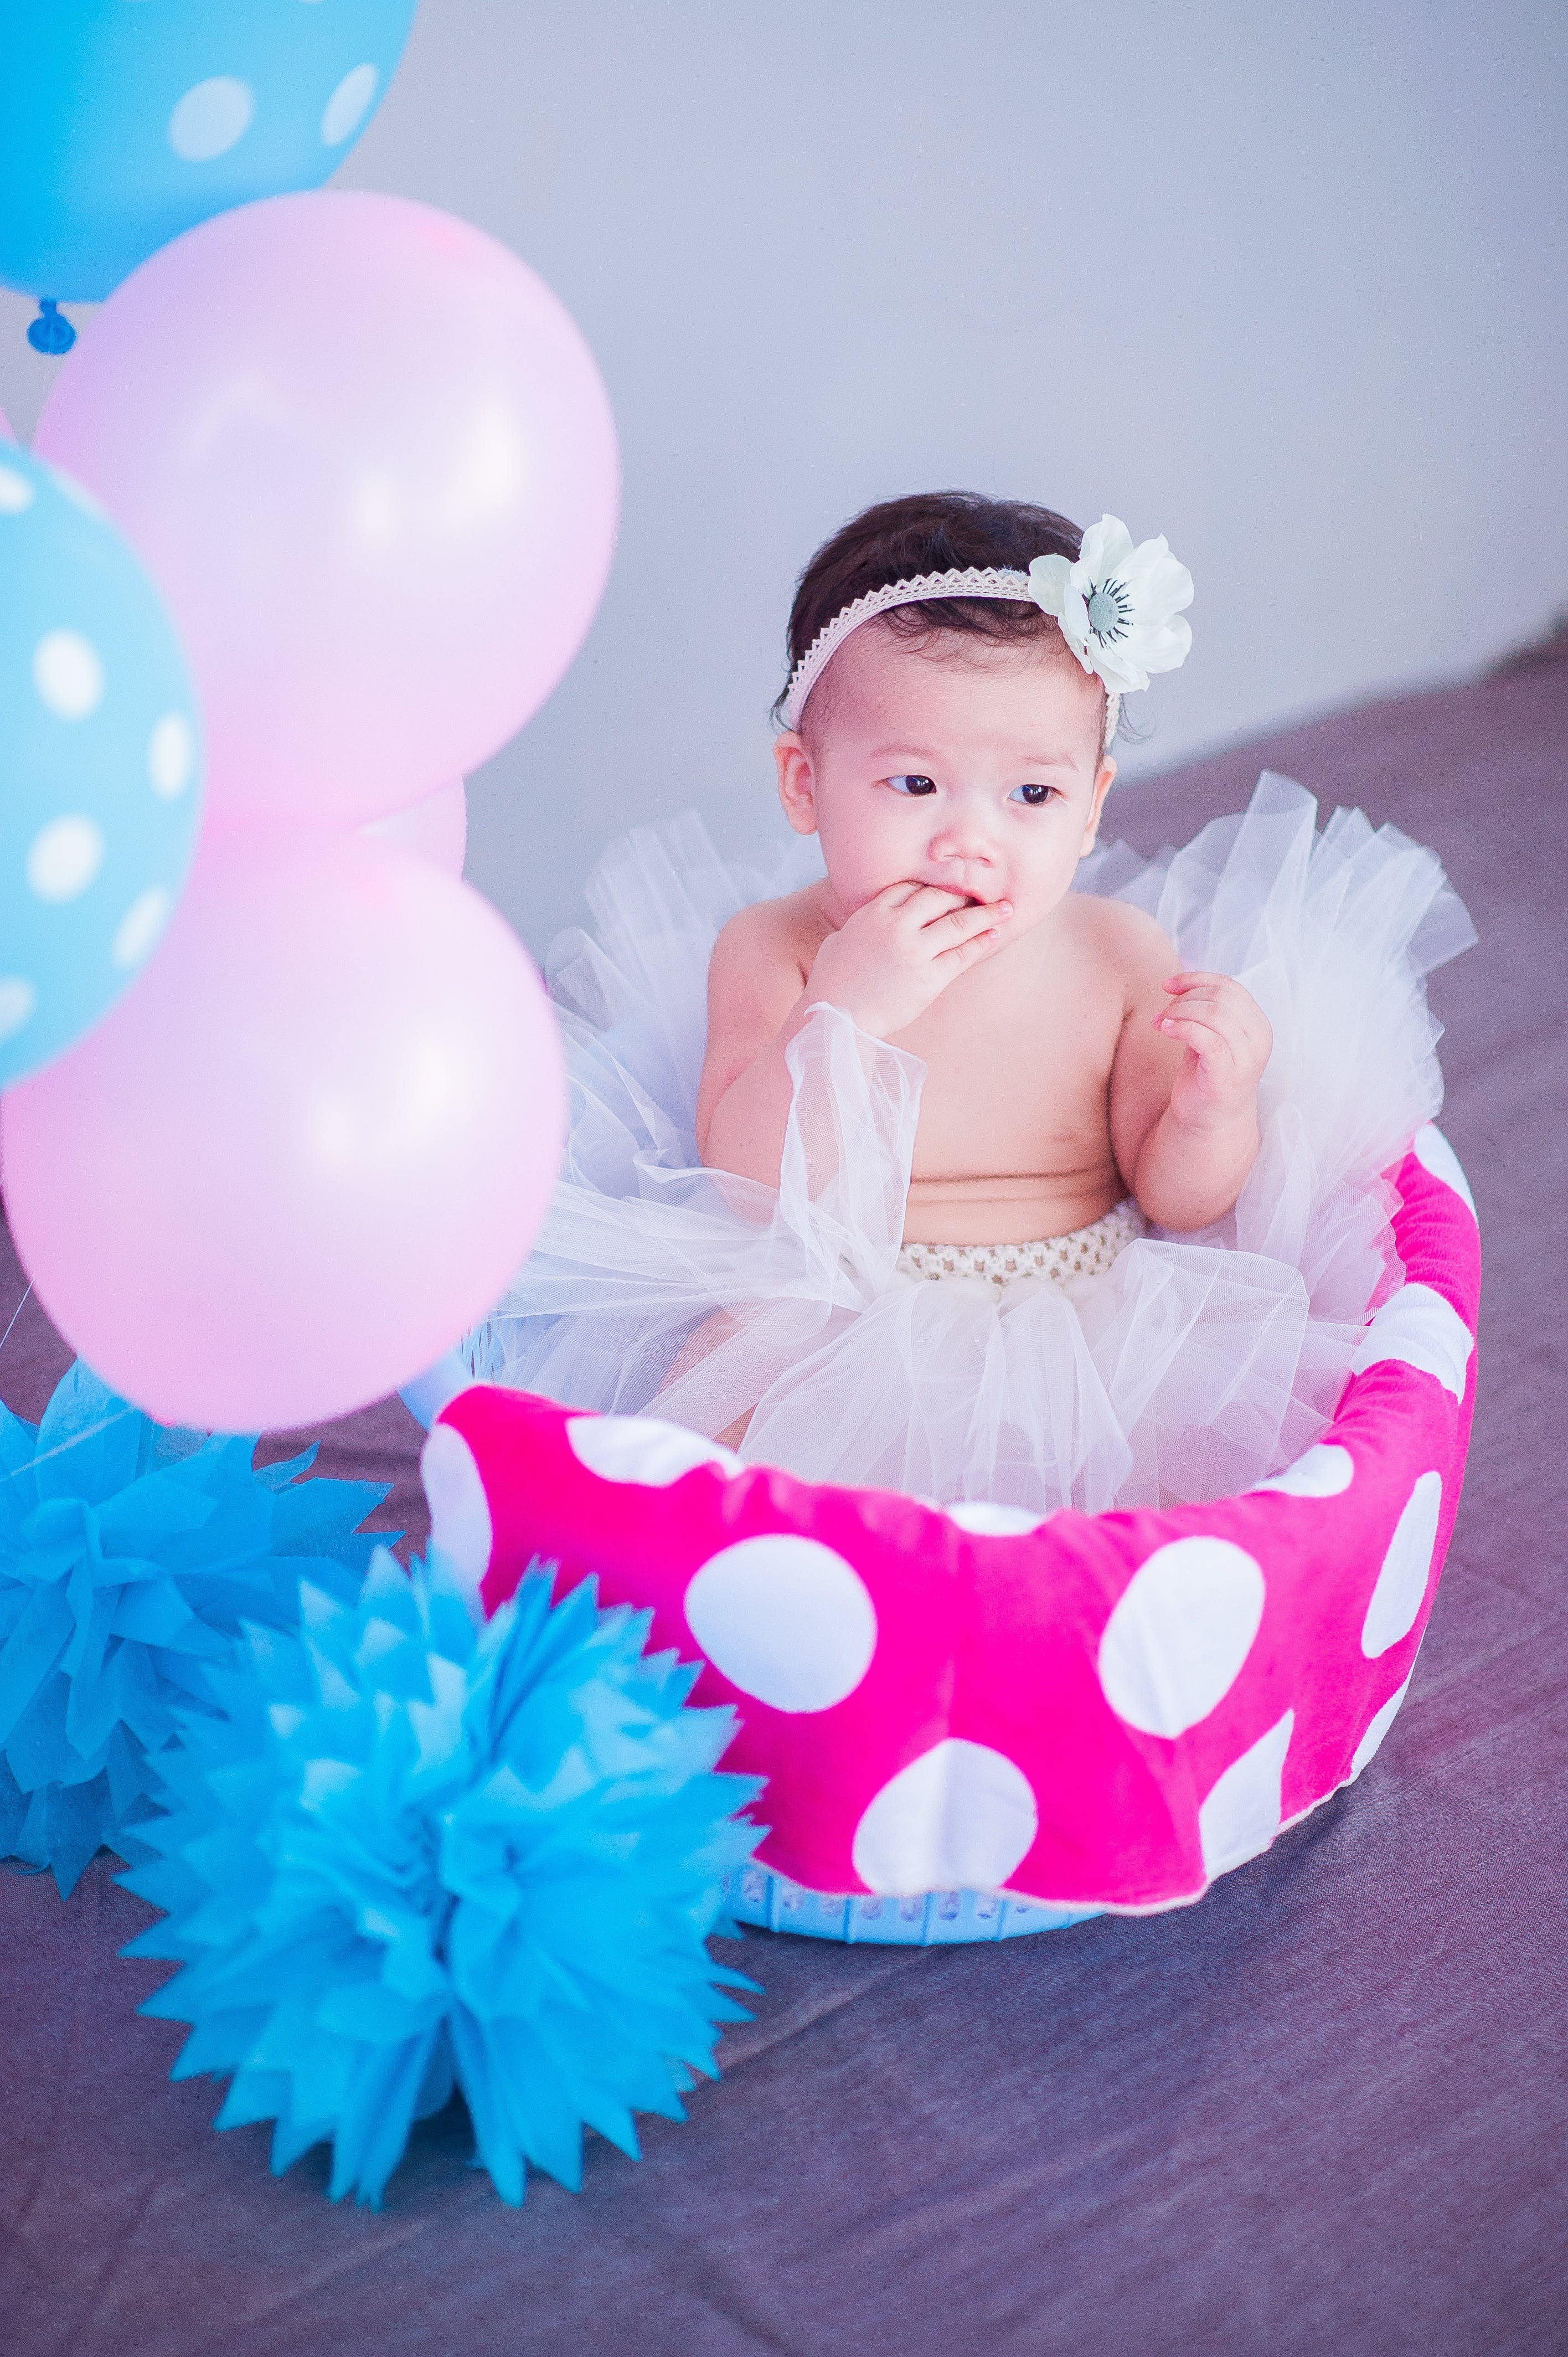 Baby Sitting on White and Pink Polka-dot Basket With Balloons